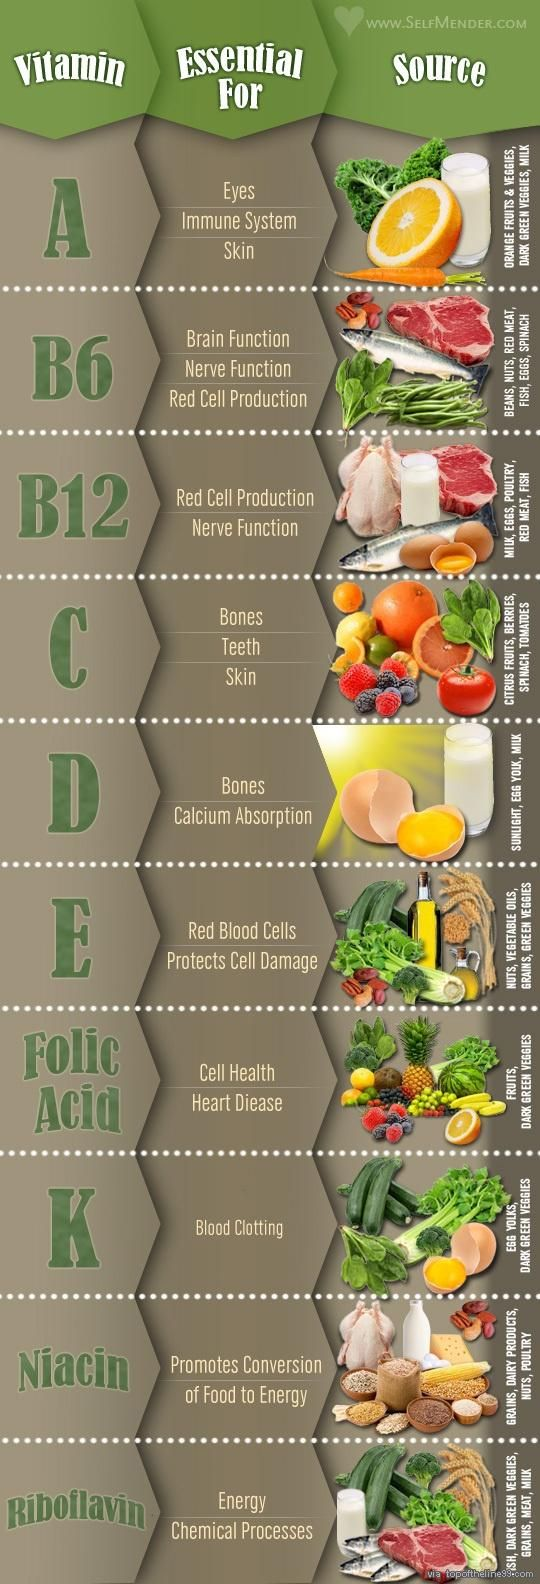 Vitamins and how to get themDon't Liver!! It has